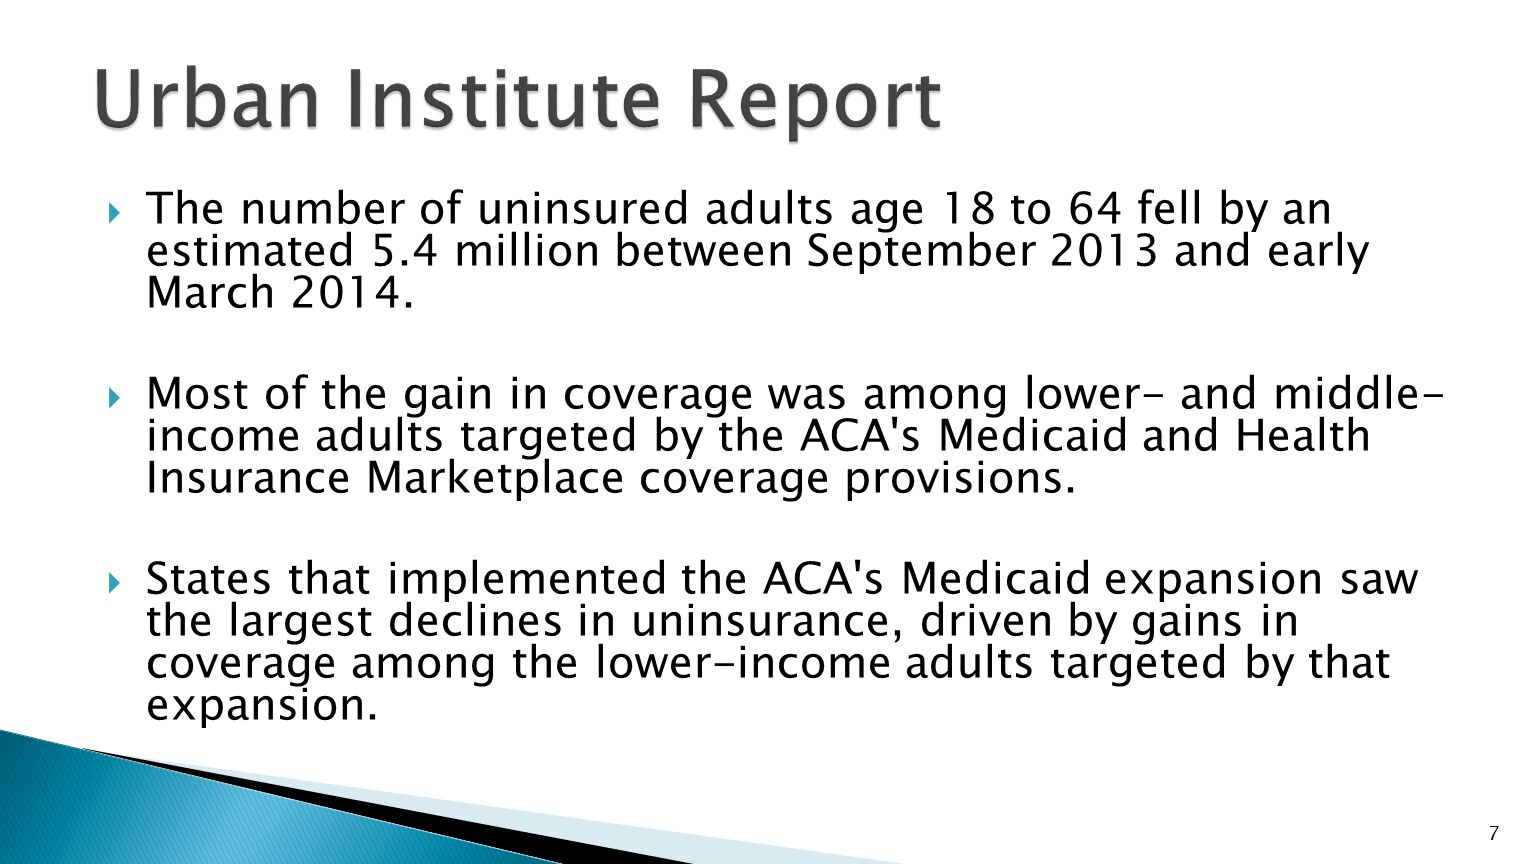  States that implemented the ACA s Medicaid expansion saw a large decline in uninsurance.